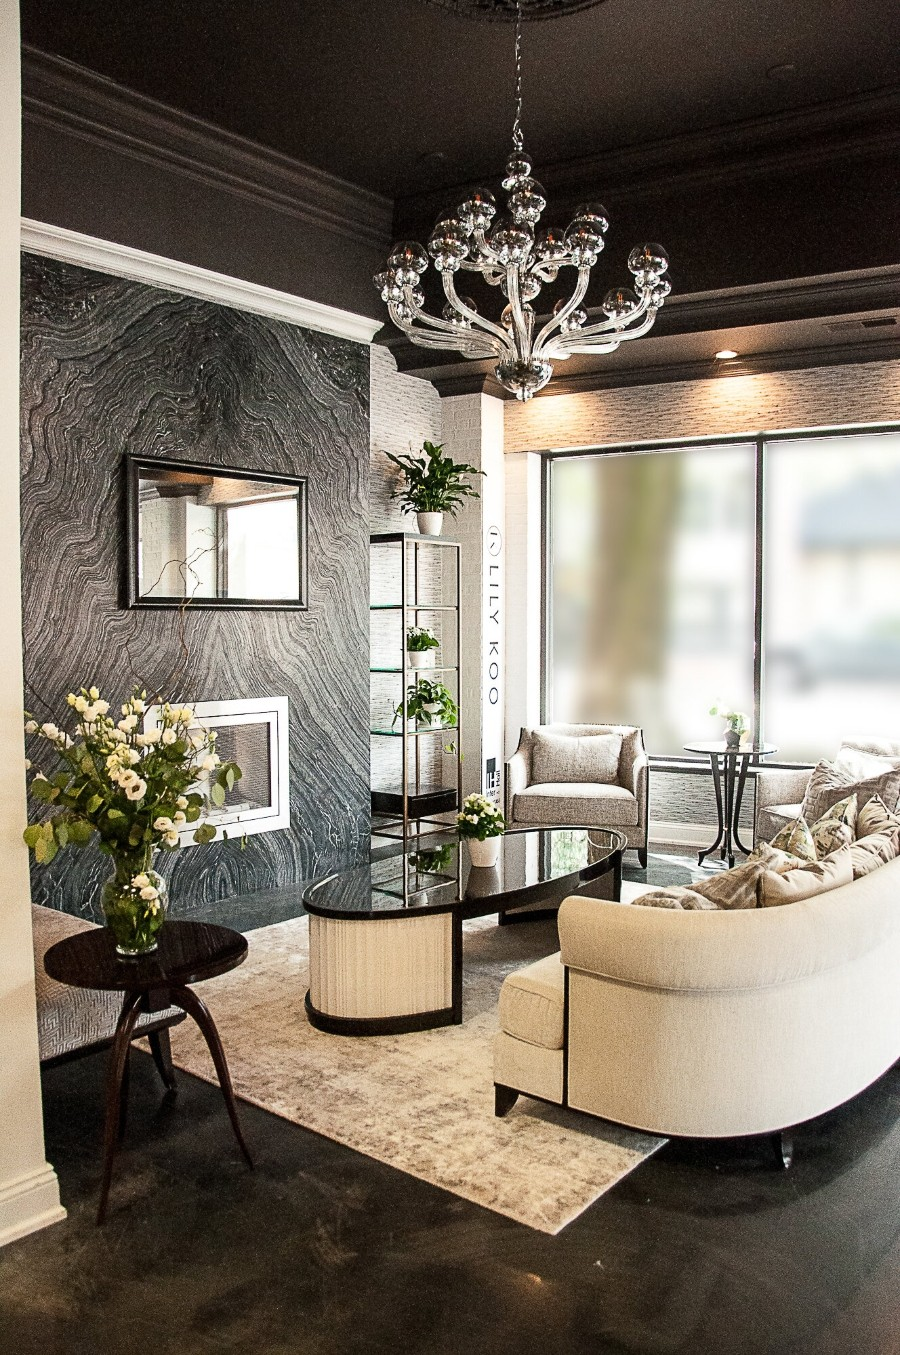 The Best Design Showrooms In New Jersey luxury showroom Where To Shop – The Best Luxury Showrooms In New Jersey red banl